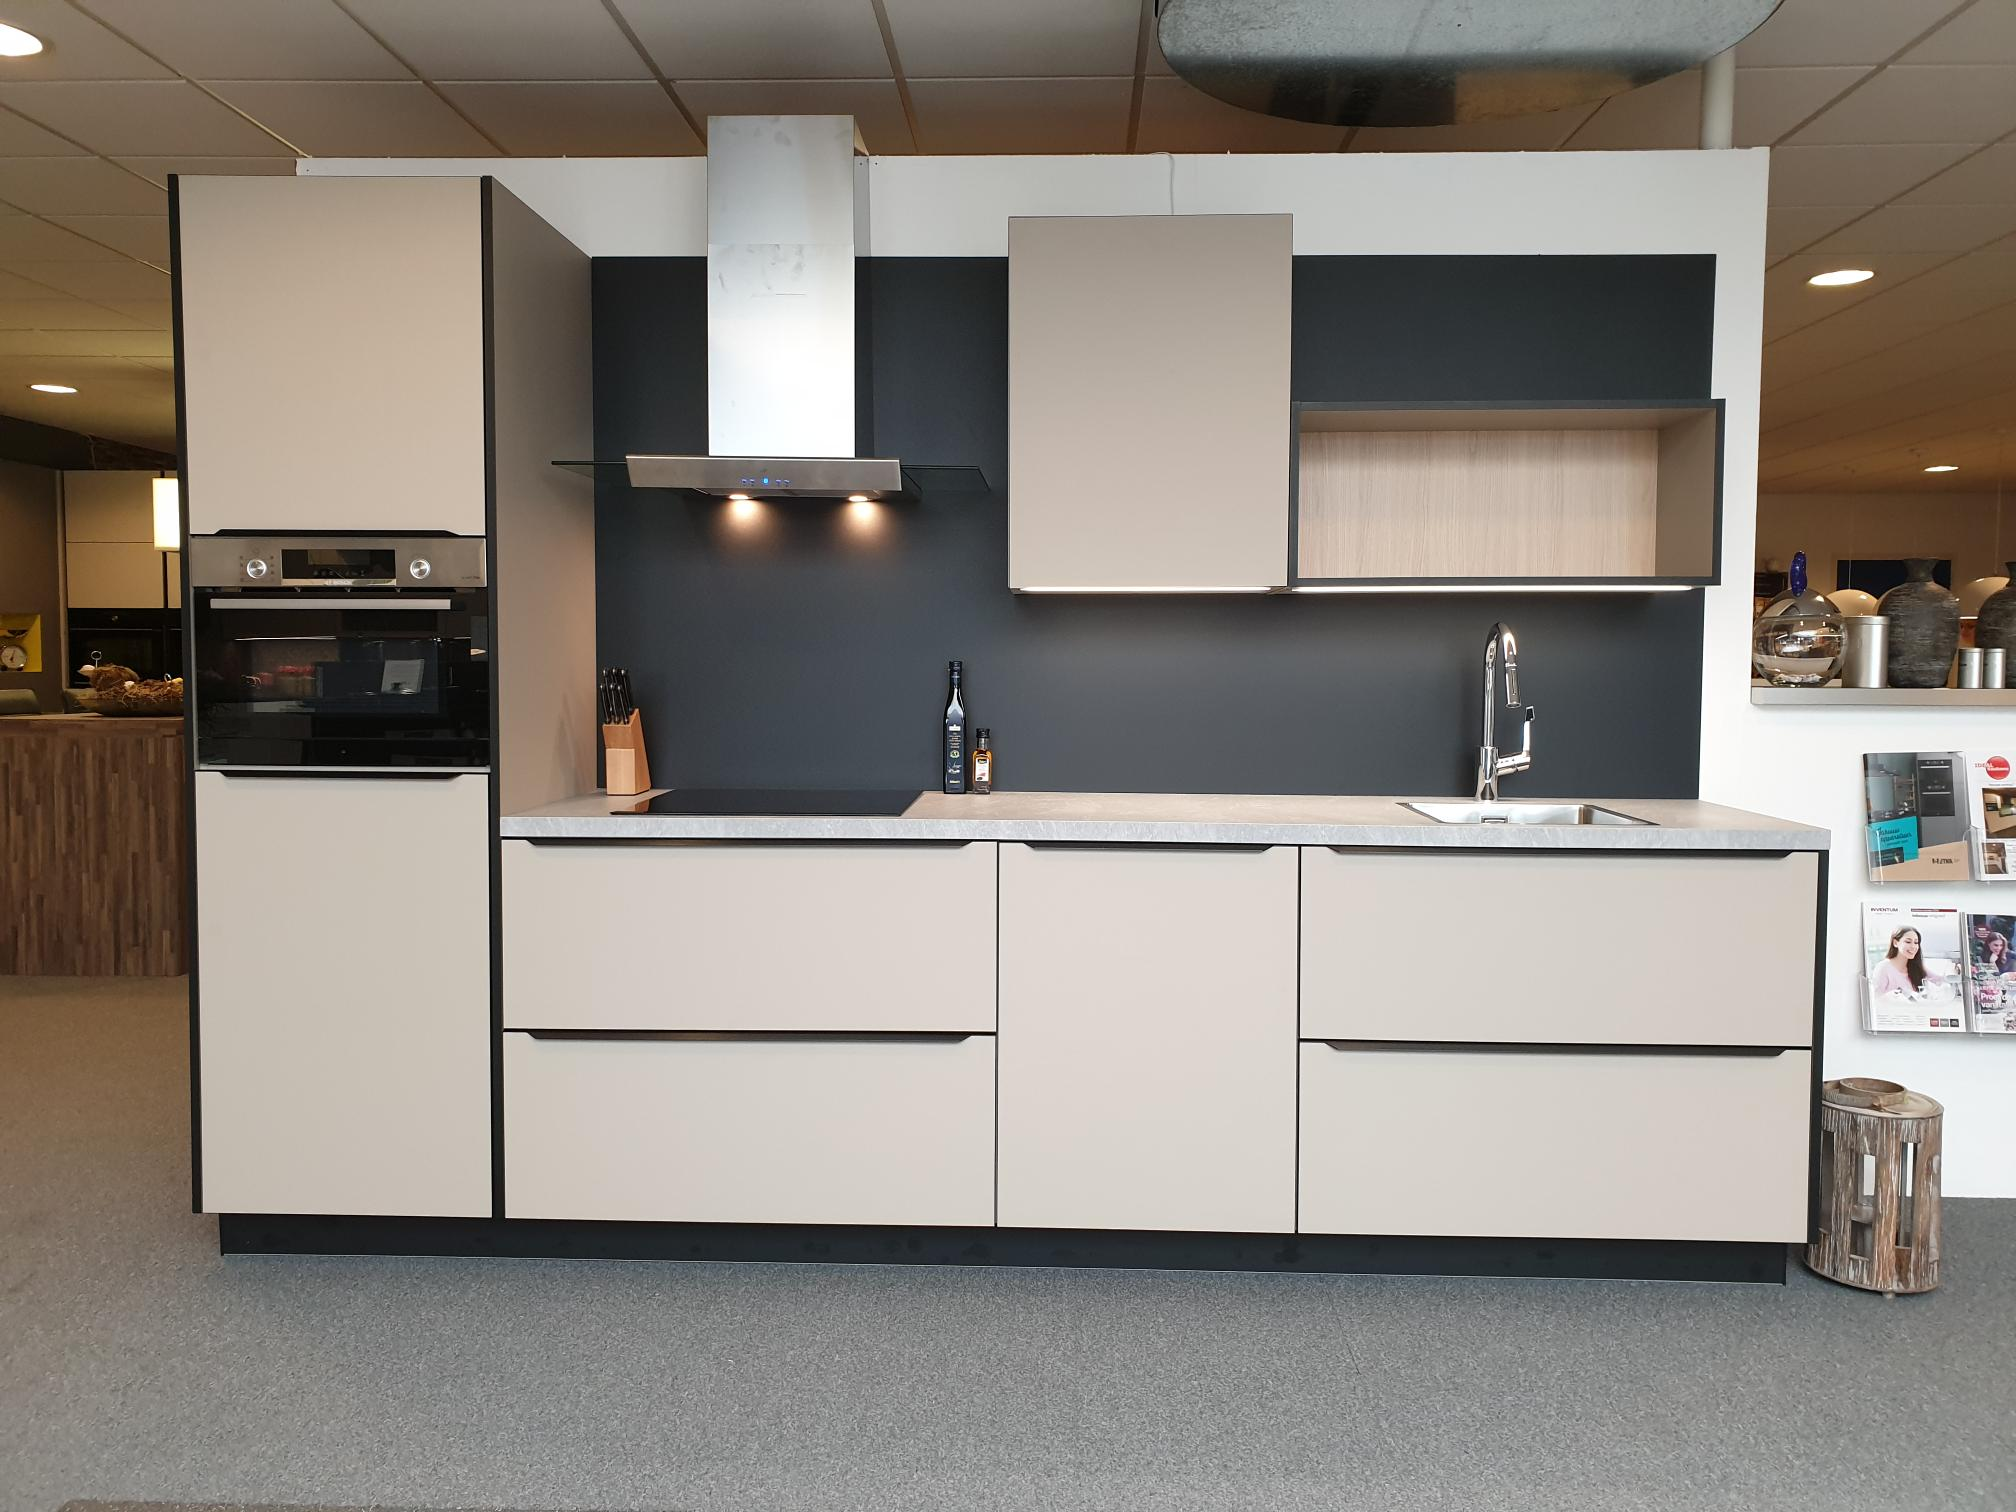 Bribus Keuken Showroom Keukens Ideal Keukens